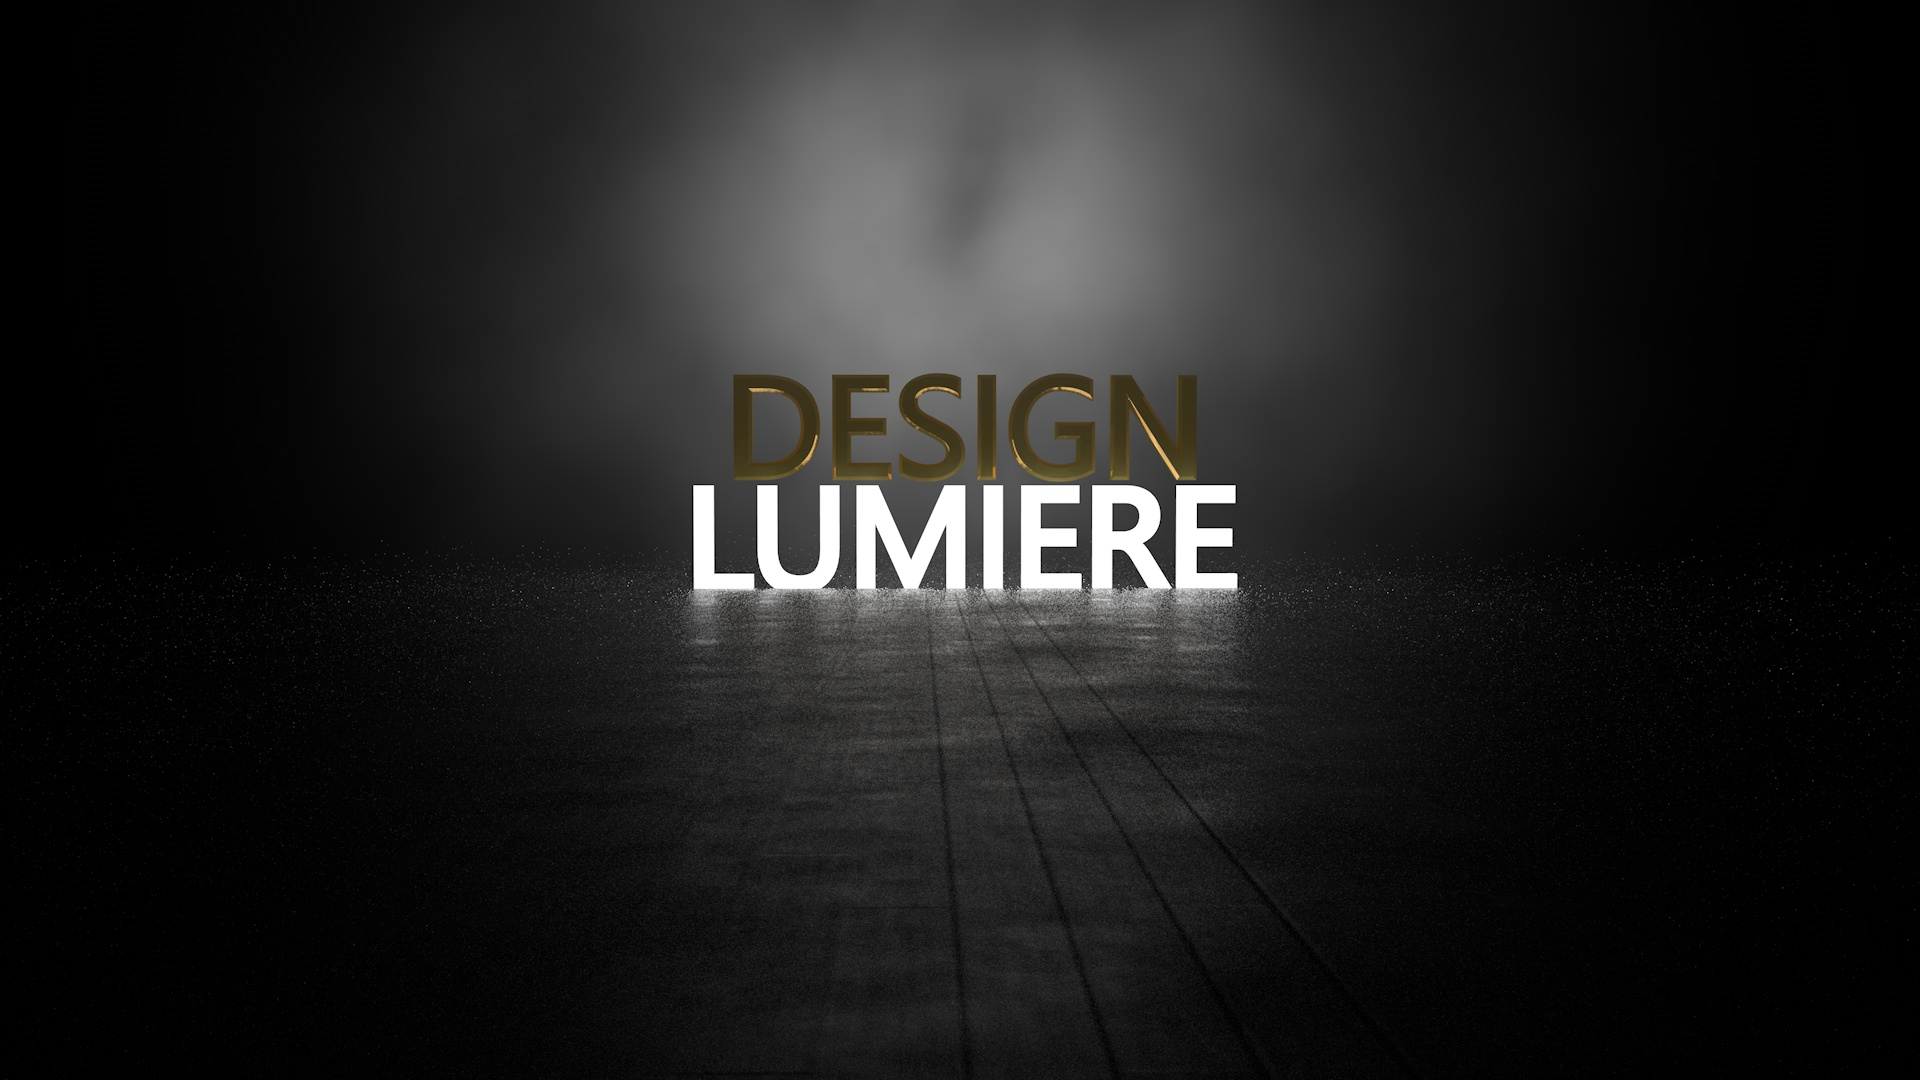 Design Lumiere Custom Chandeliers & Bespoke Lighting art